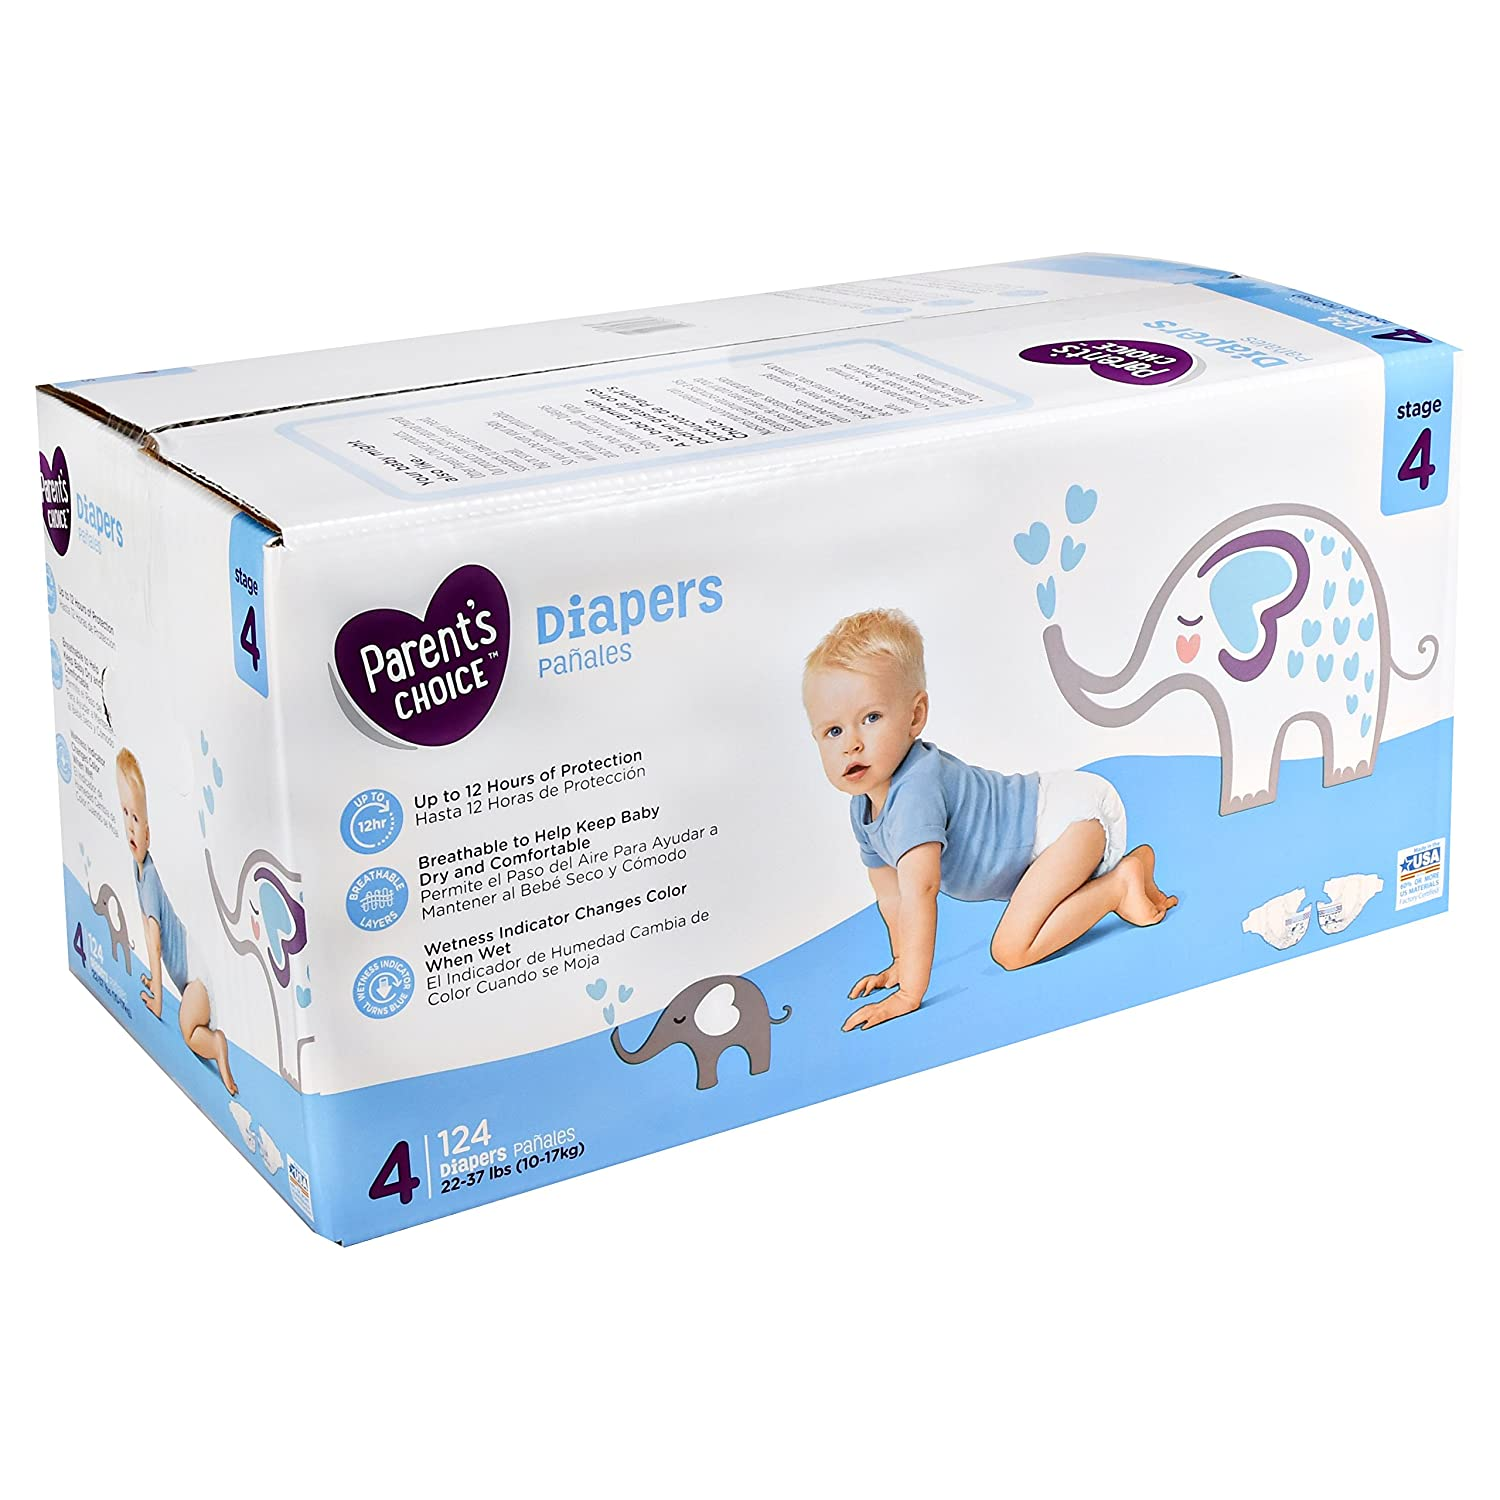 Amazon.com: Branded Parents Choice Diapers, Size 4, 180 Diapers , Weight 22-37 - Branded Diapers with fast delivery (Soft and Comfortable for Babies): ...